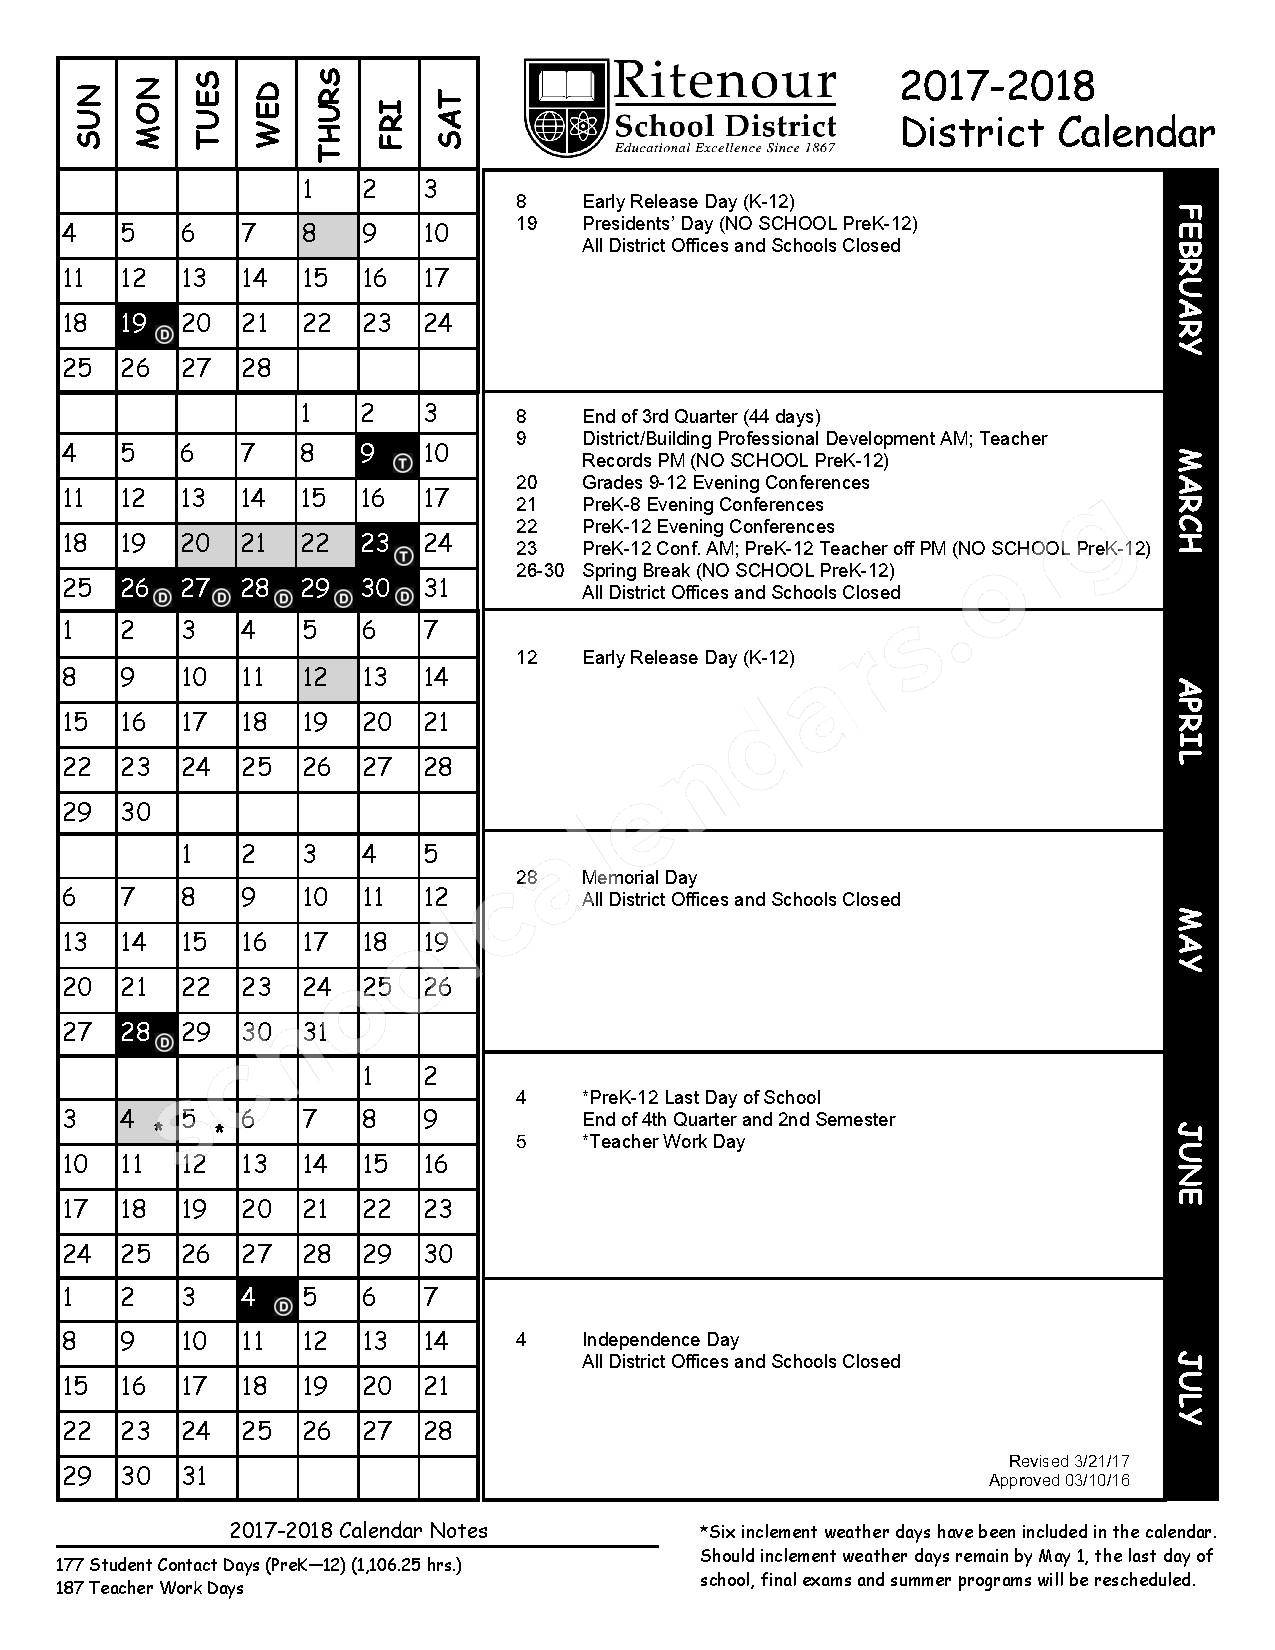 2017 - 2018 District Calendar – Ritenour School District – page 2